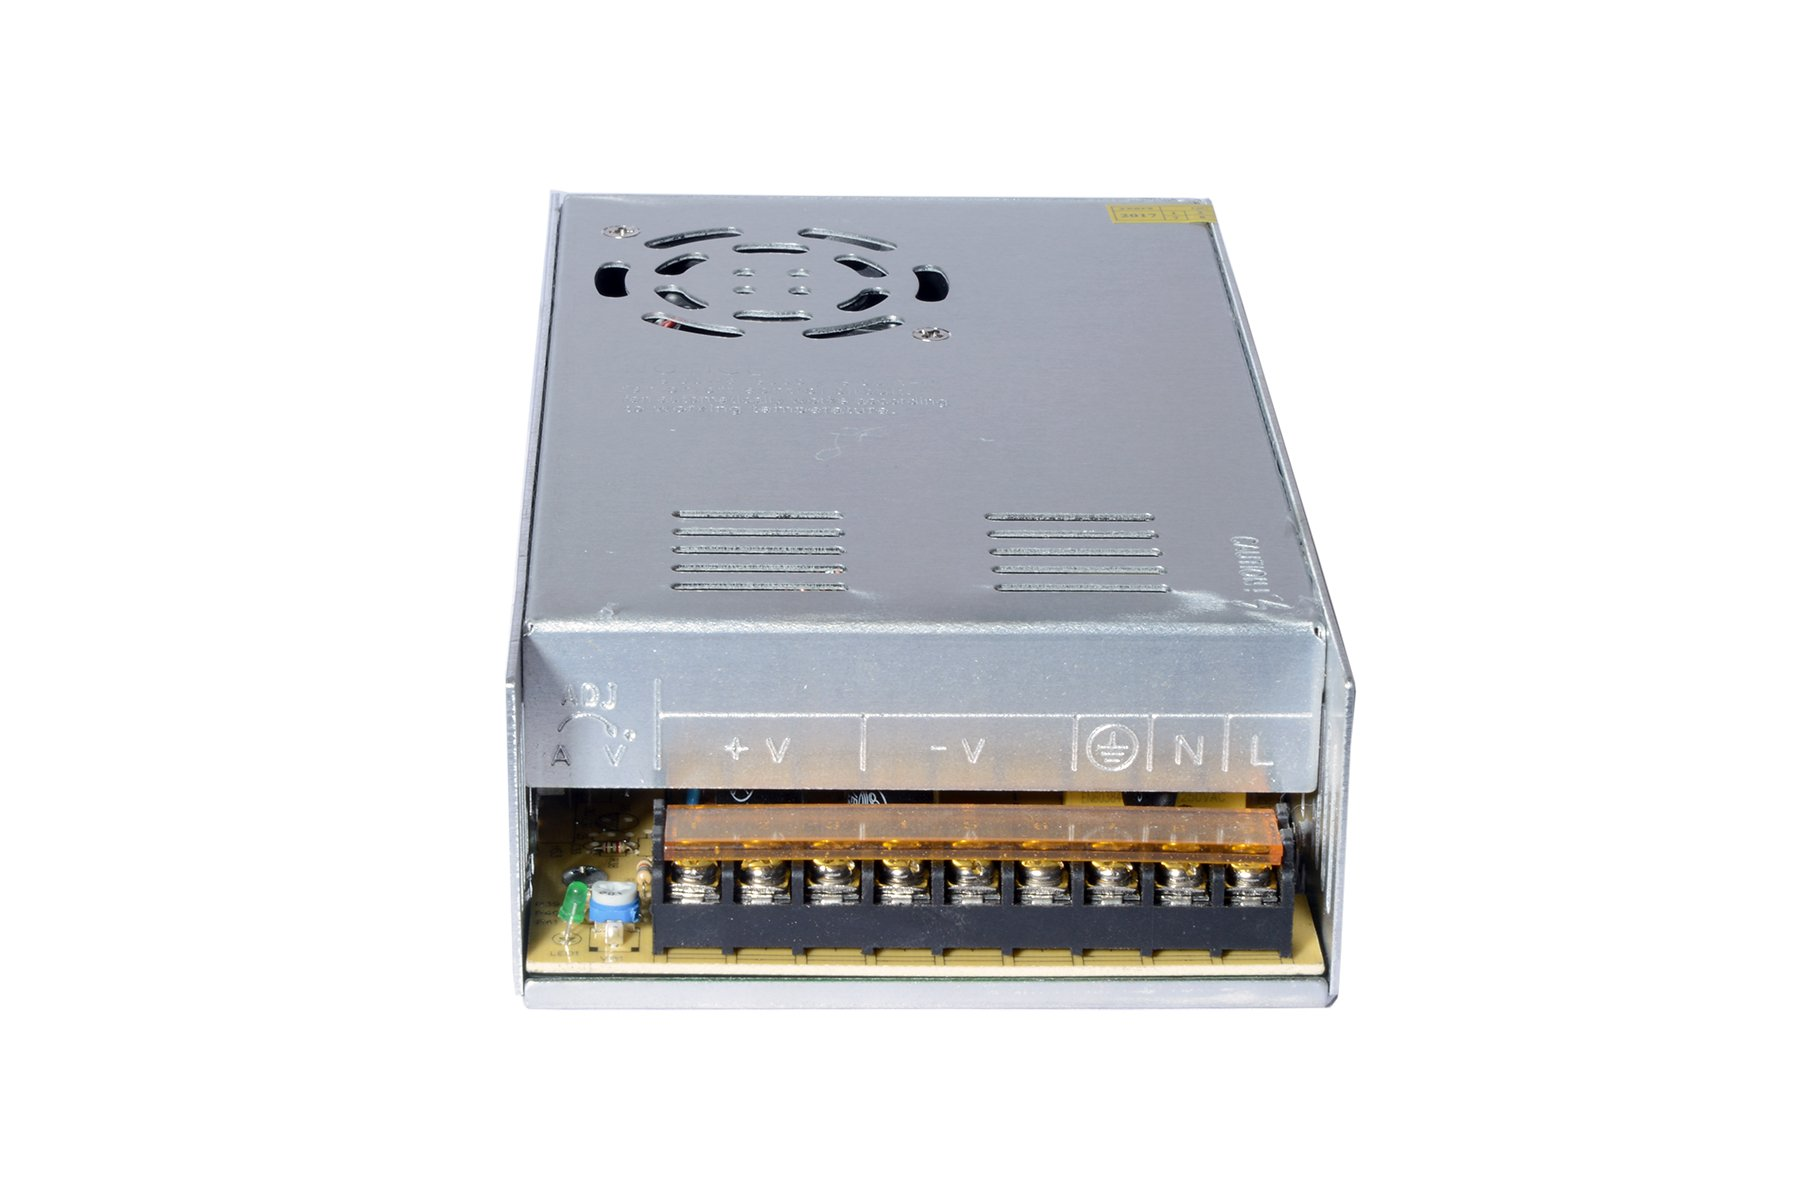 MAA-KU smps power supply unit with 3 rail sation of 15V/23A 350watts